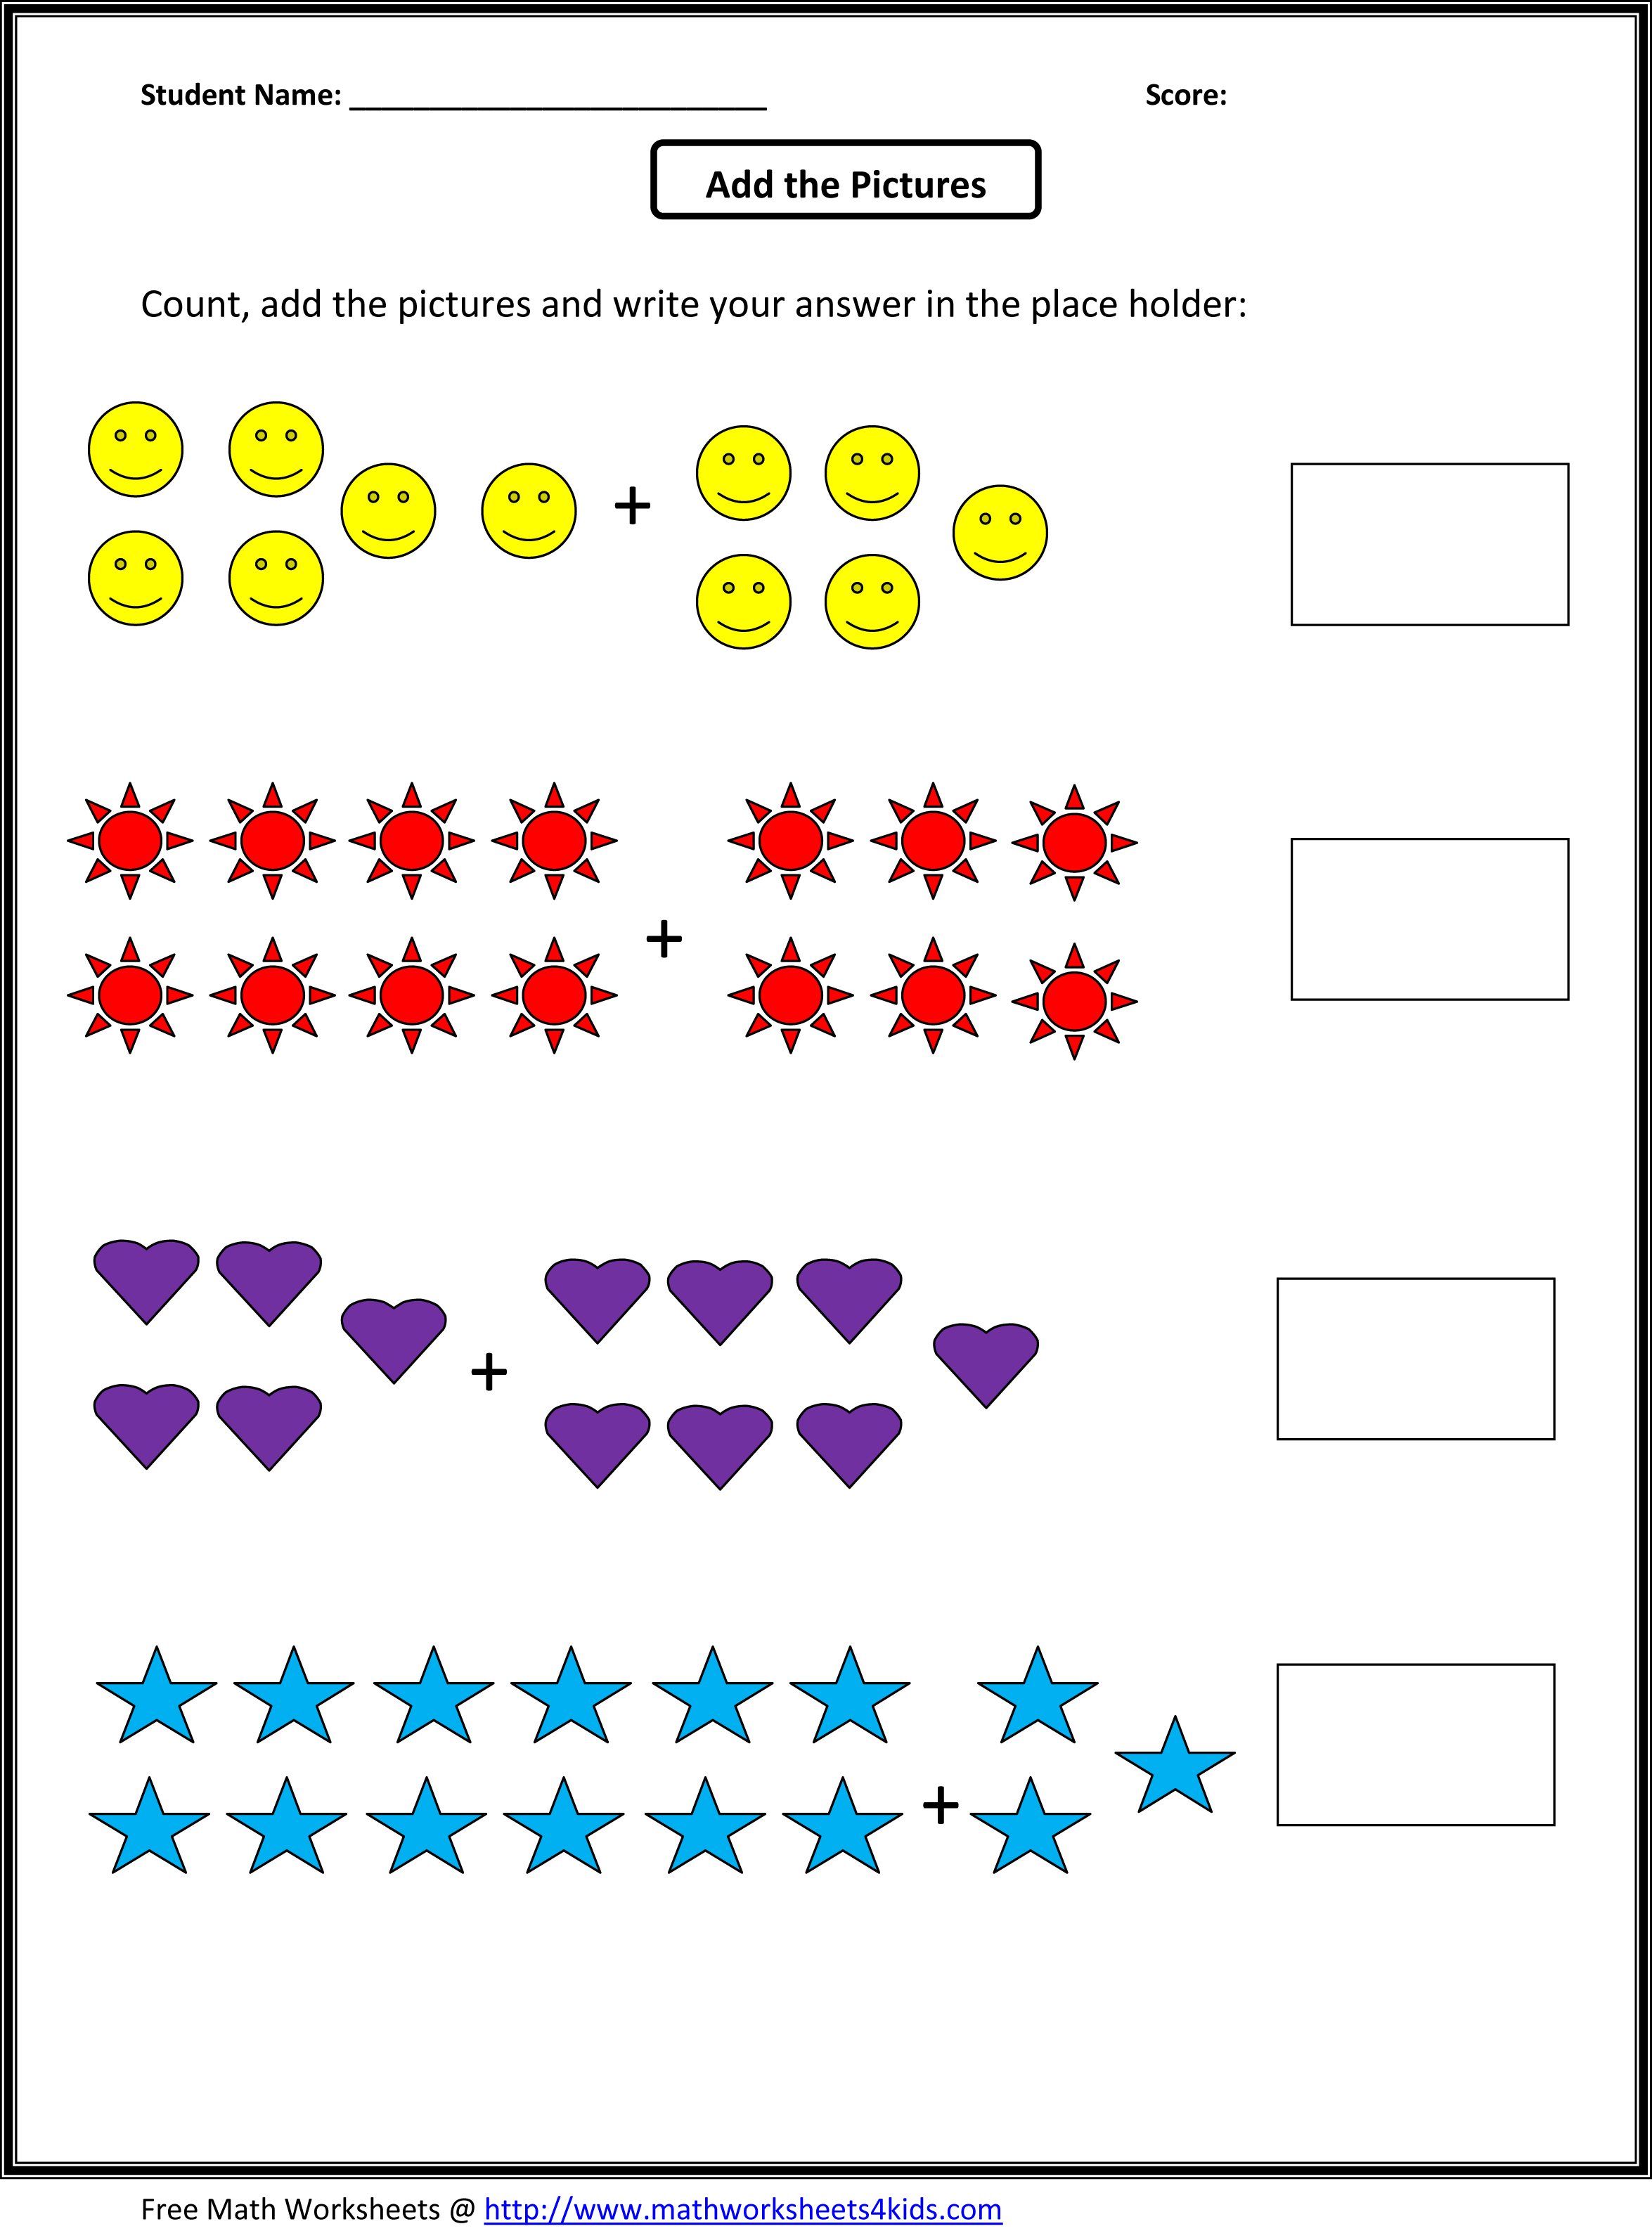 Proatmealus  Gorgeous Grade  Maths Worksheet  Reocurent With Hot Math Worksheets For St Grade Free  Reocurent With Alluring Th Grade Word Problem Worksheets Also Middle Colonies Worksheets In Addition Simplifying Complex Rational Expressions Worksheet And Jamestown Colony Worksheet As Well As Word Of The Week Worksheet Additionally Integer Puzzle Worksheets From Reocurentcom With Proatmealus  Hot Grade  Maths Worksheet  Reocurent With Alluring Math Worksheets For St Grade Free  Reocurent And Gorgeous Th Grade Word Problem Worksheets Also Middle Colonies Worksheets In Addition Simplifying Complex Rational Expressions Worksheet From Reocurentcom